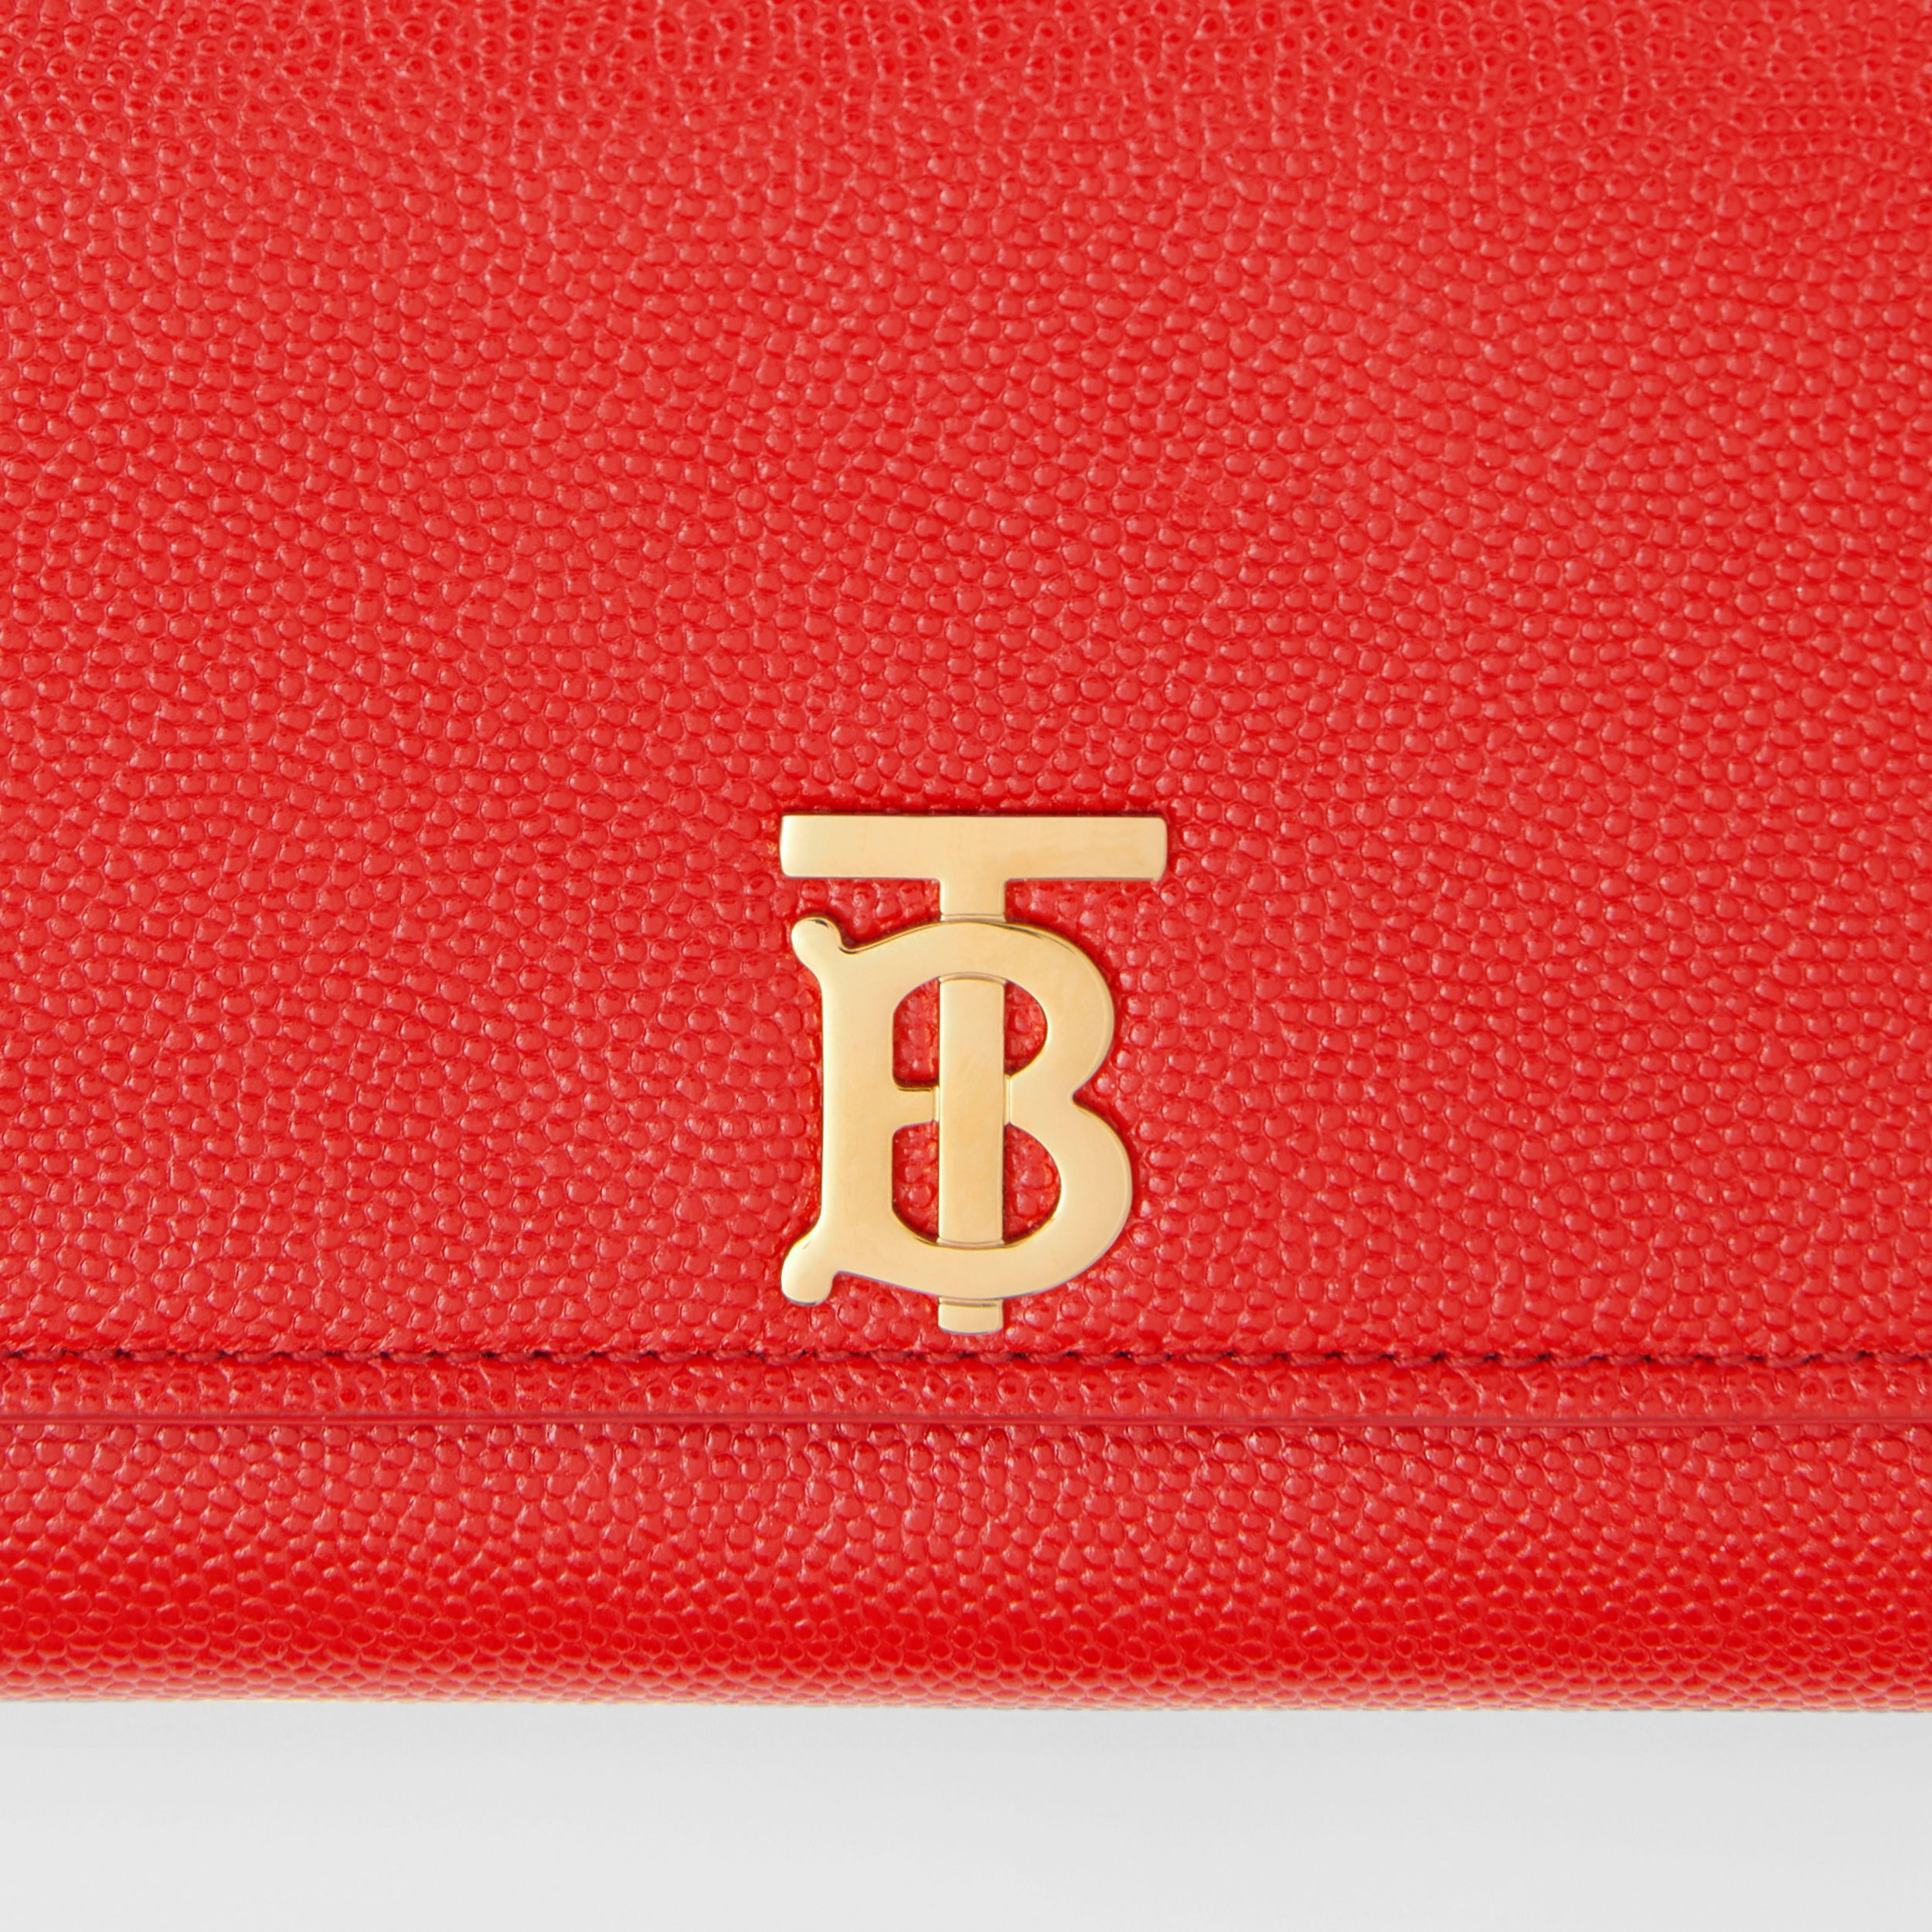 Monogram Motif Grainy Leather Continental Wallet in Bright Red - Women | Burberry United Kingdom - 2